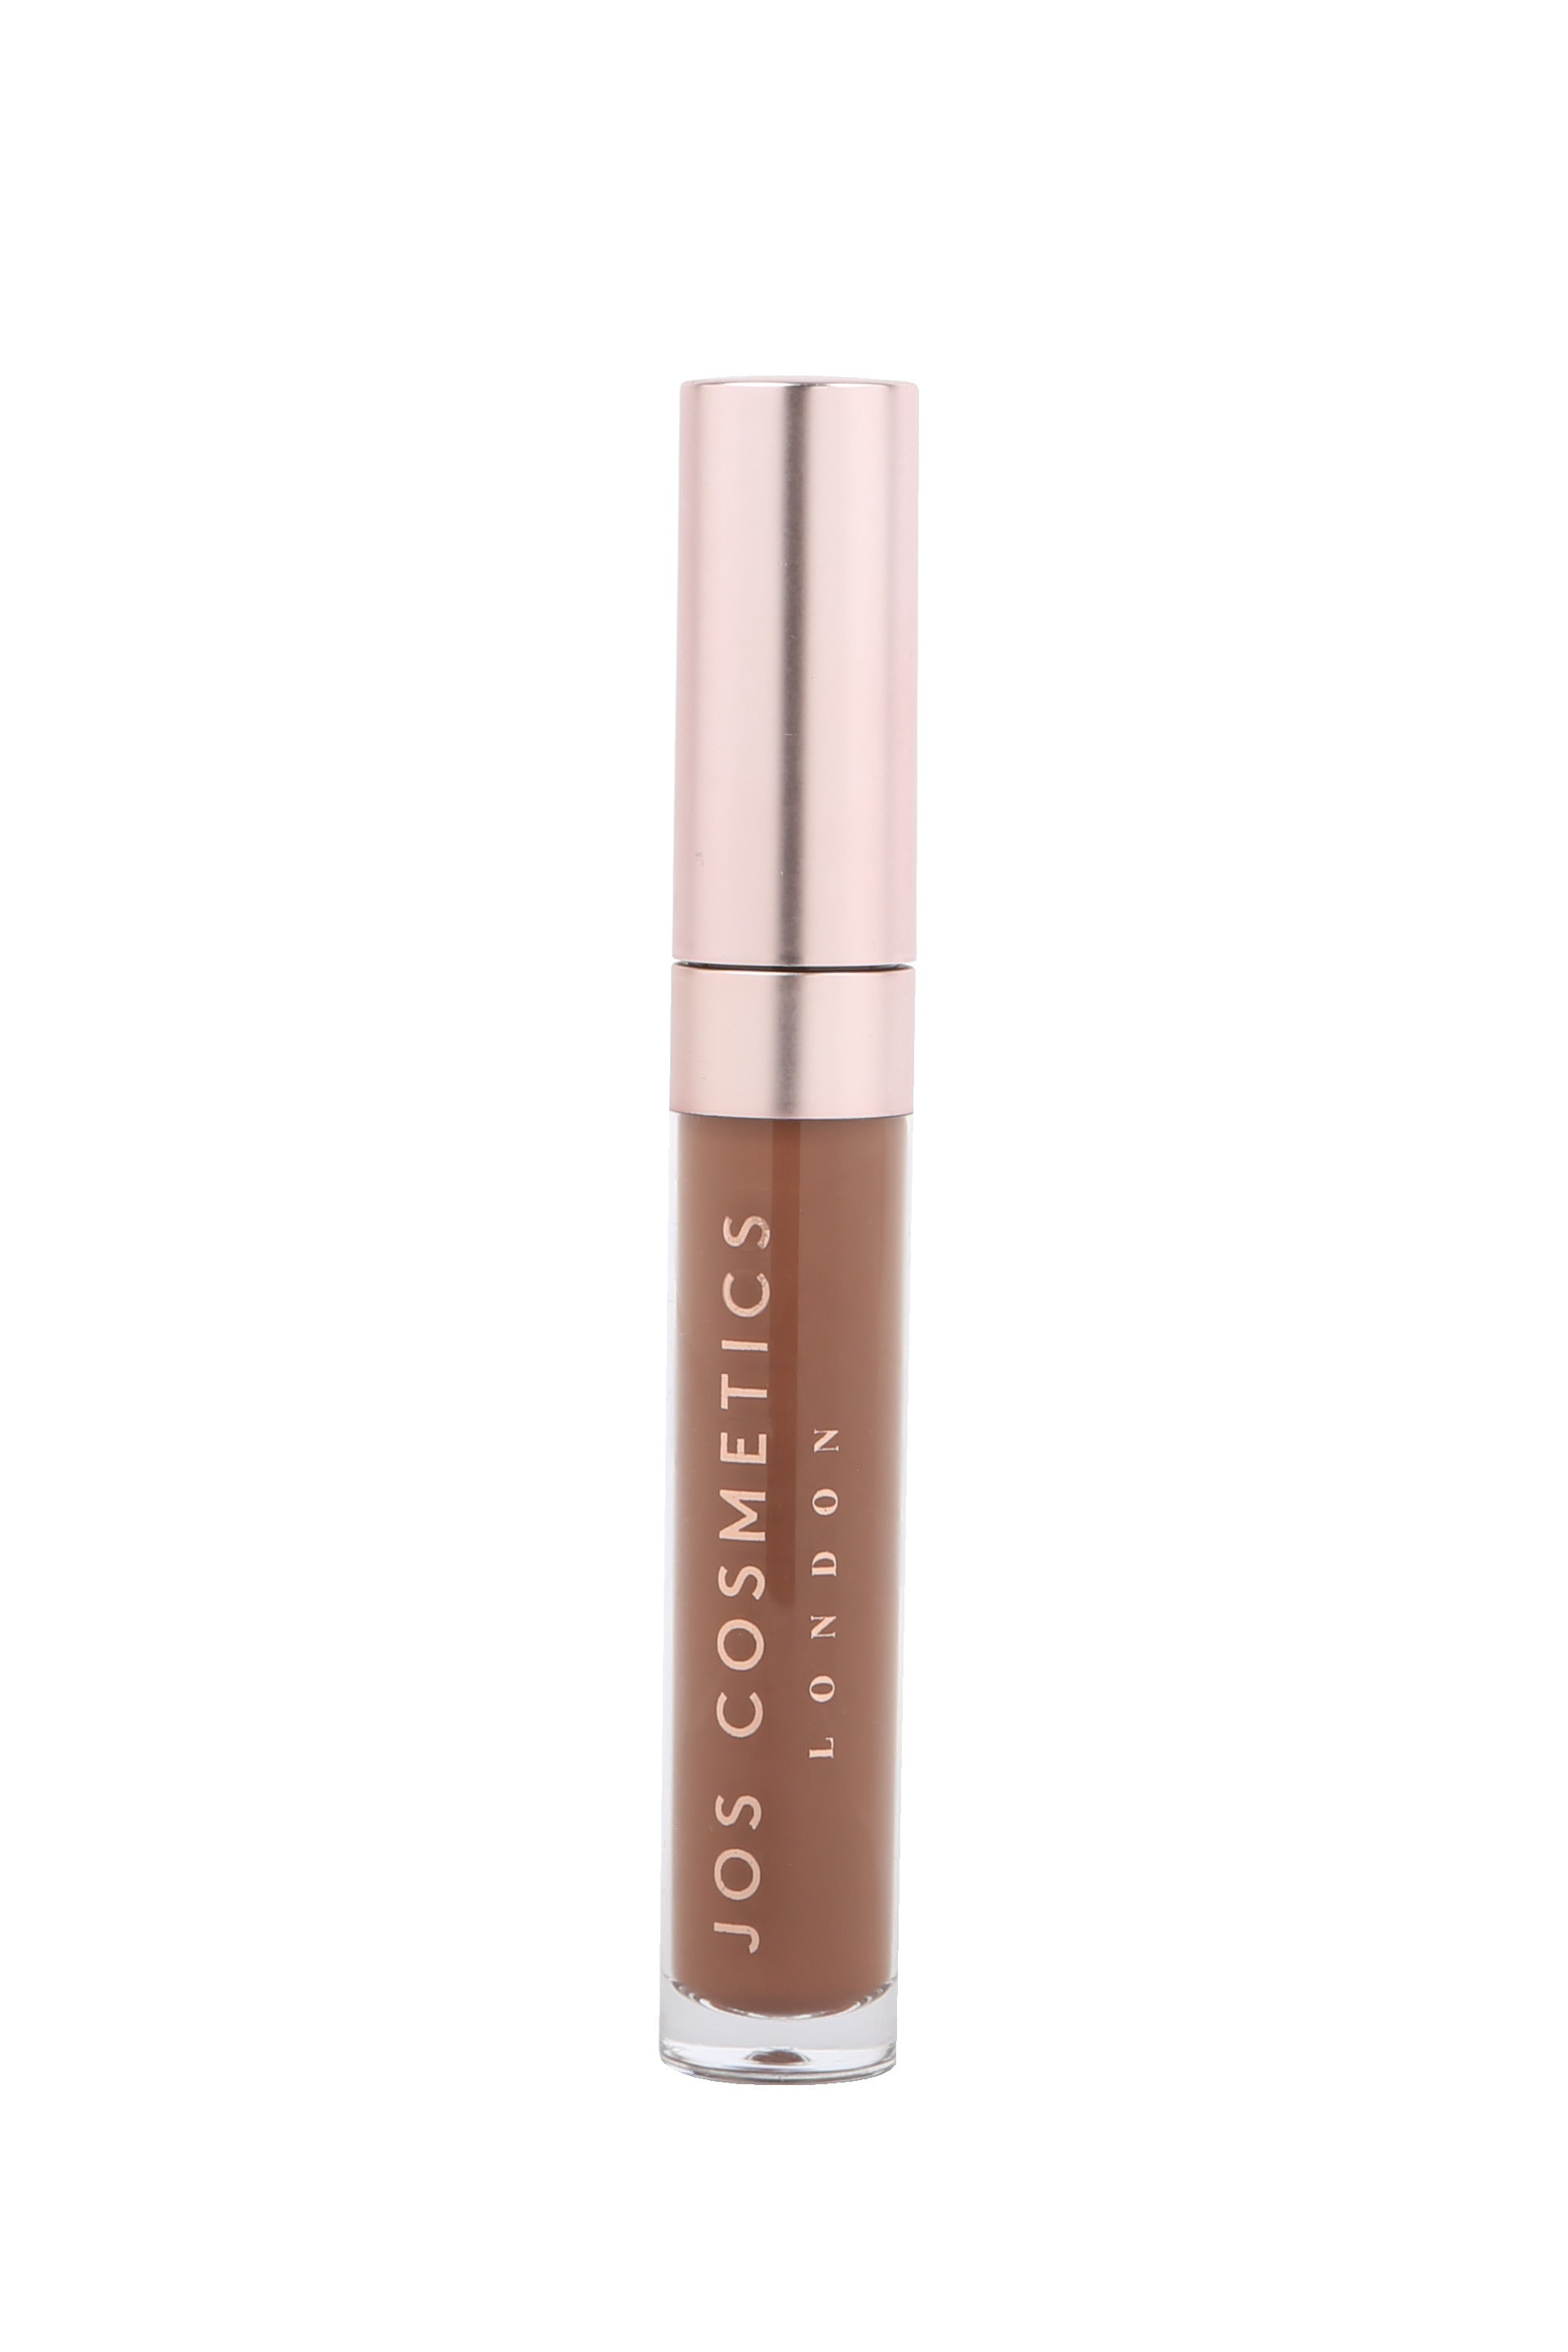 Melted Sugar Soft Matte Liquid Lipstick - Jos Cosmetics London